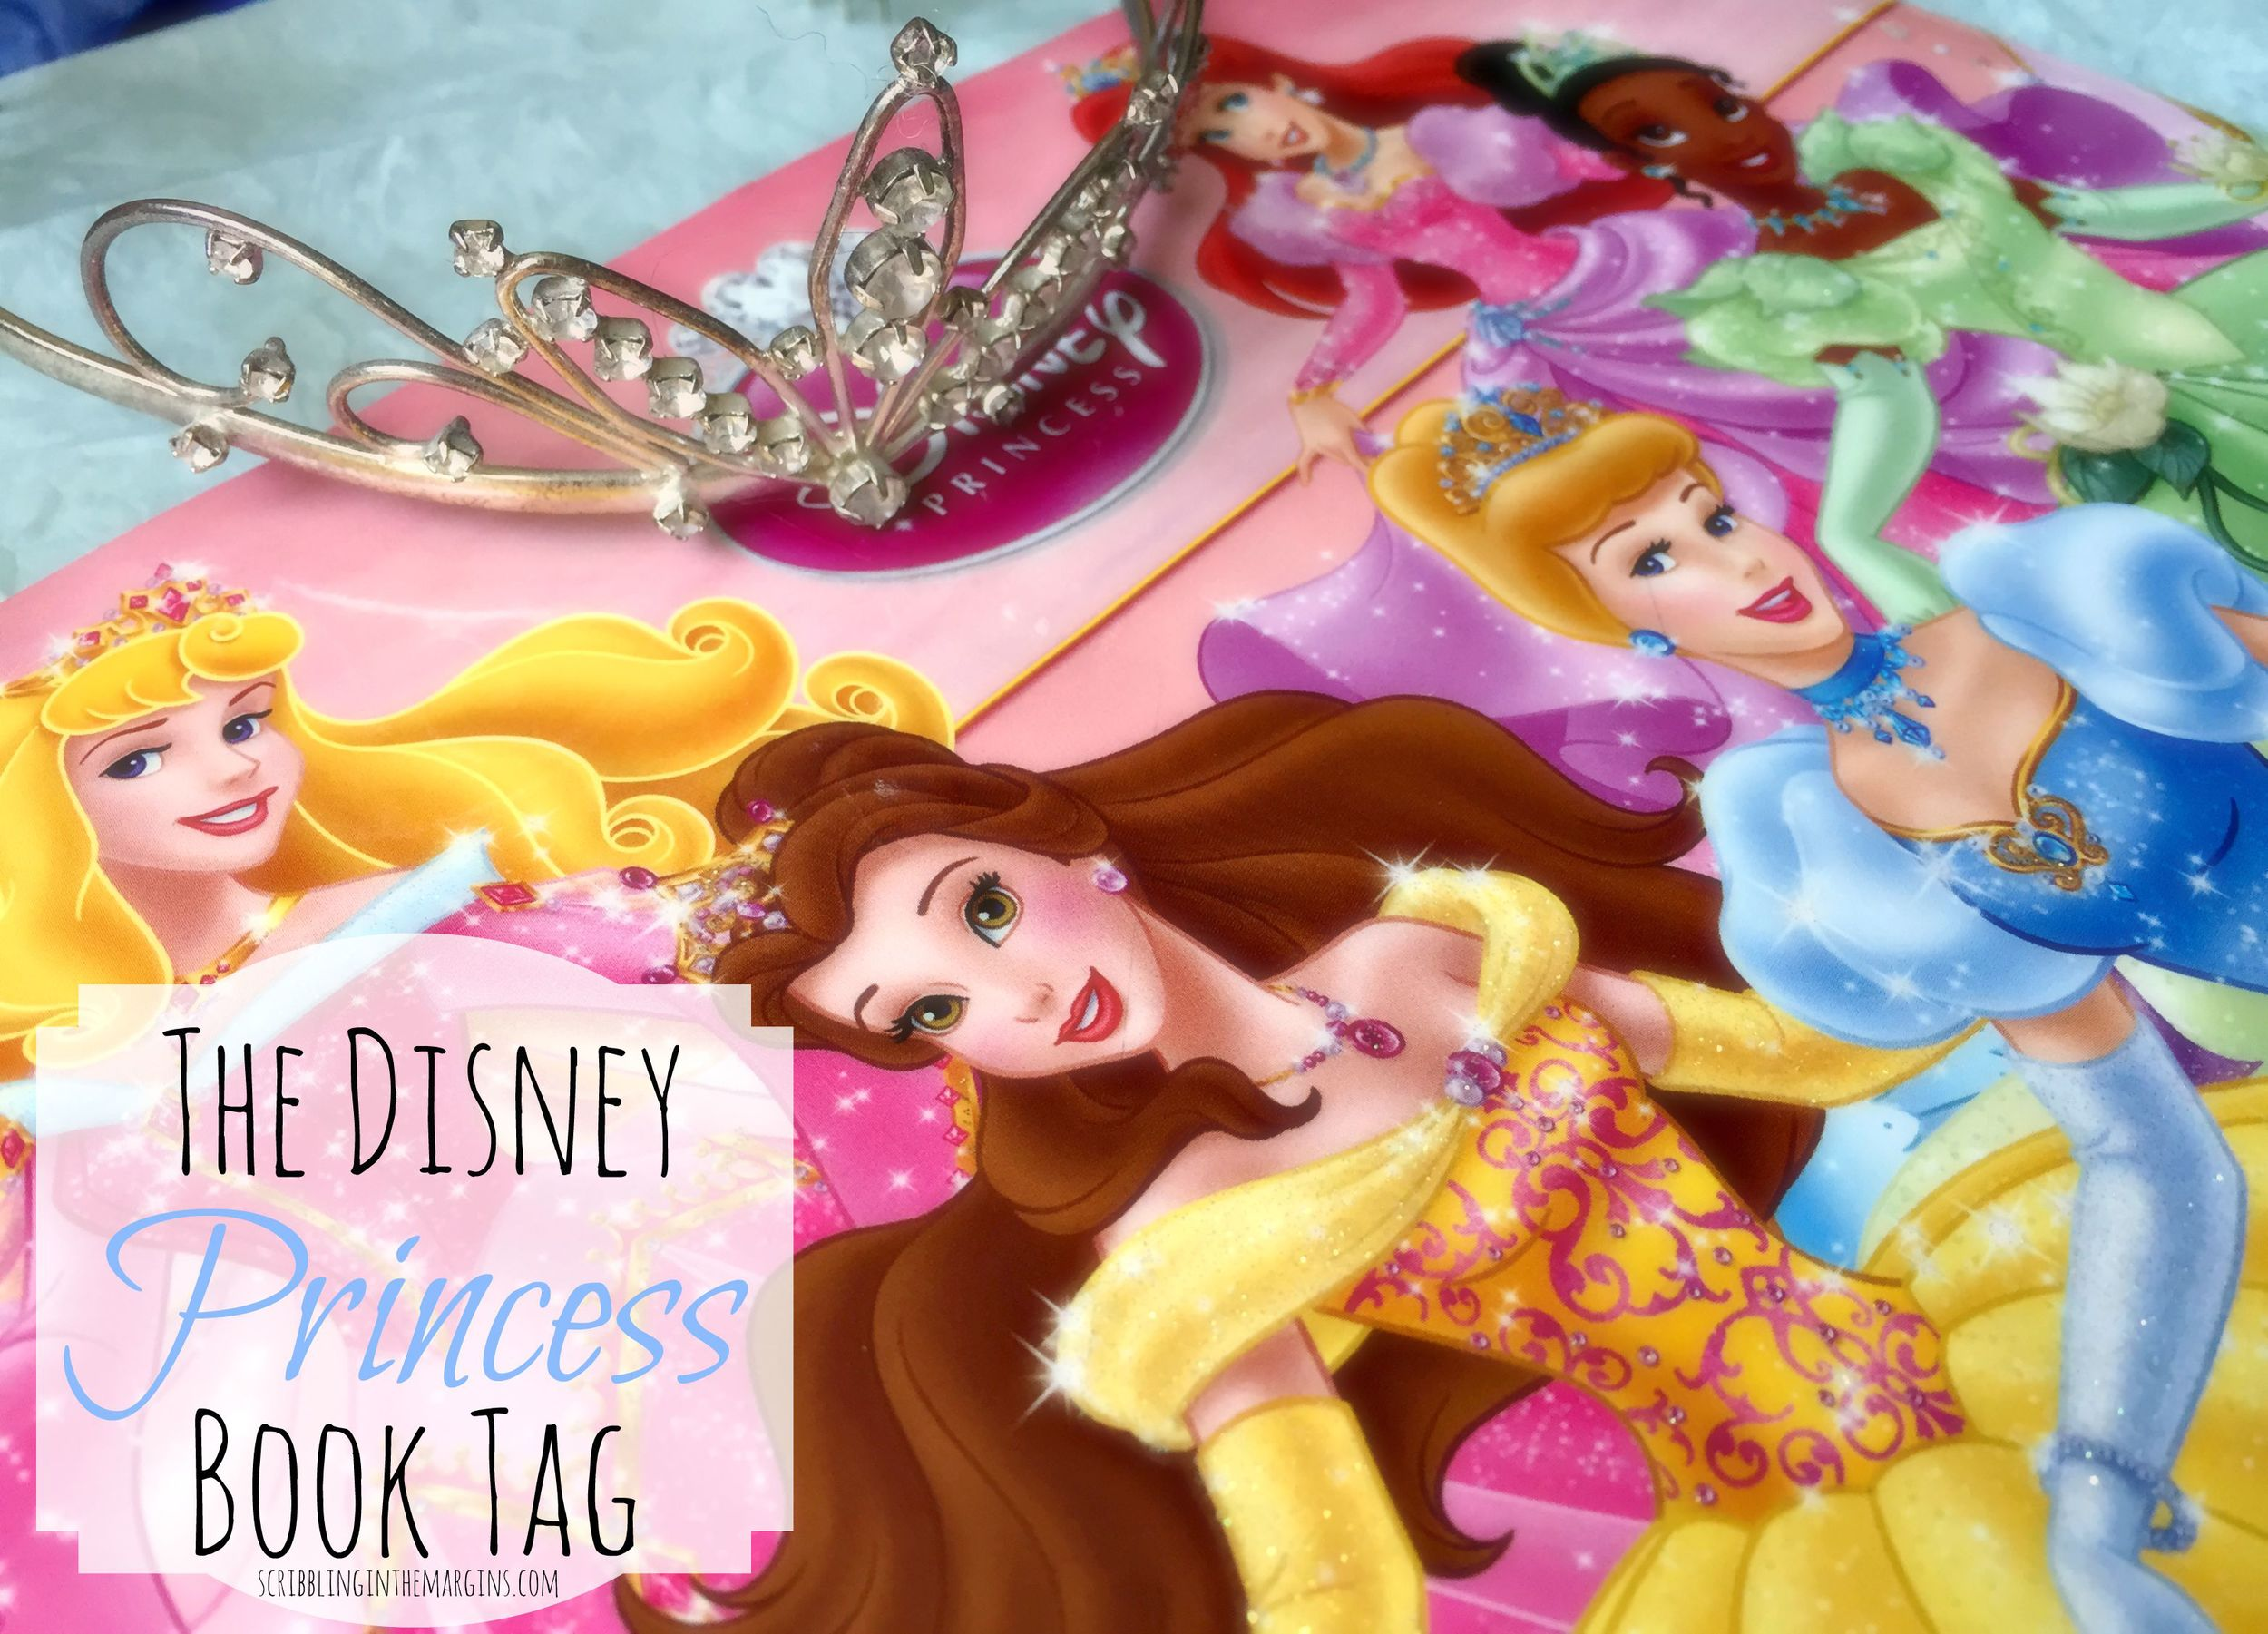 YEs, this is a picture of a book about DIsney Princess. I know. I'm cool.